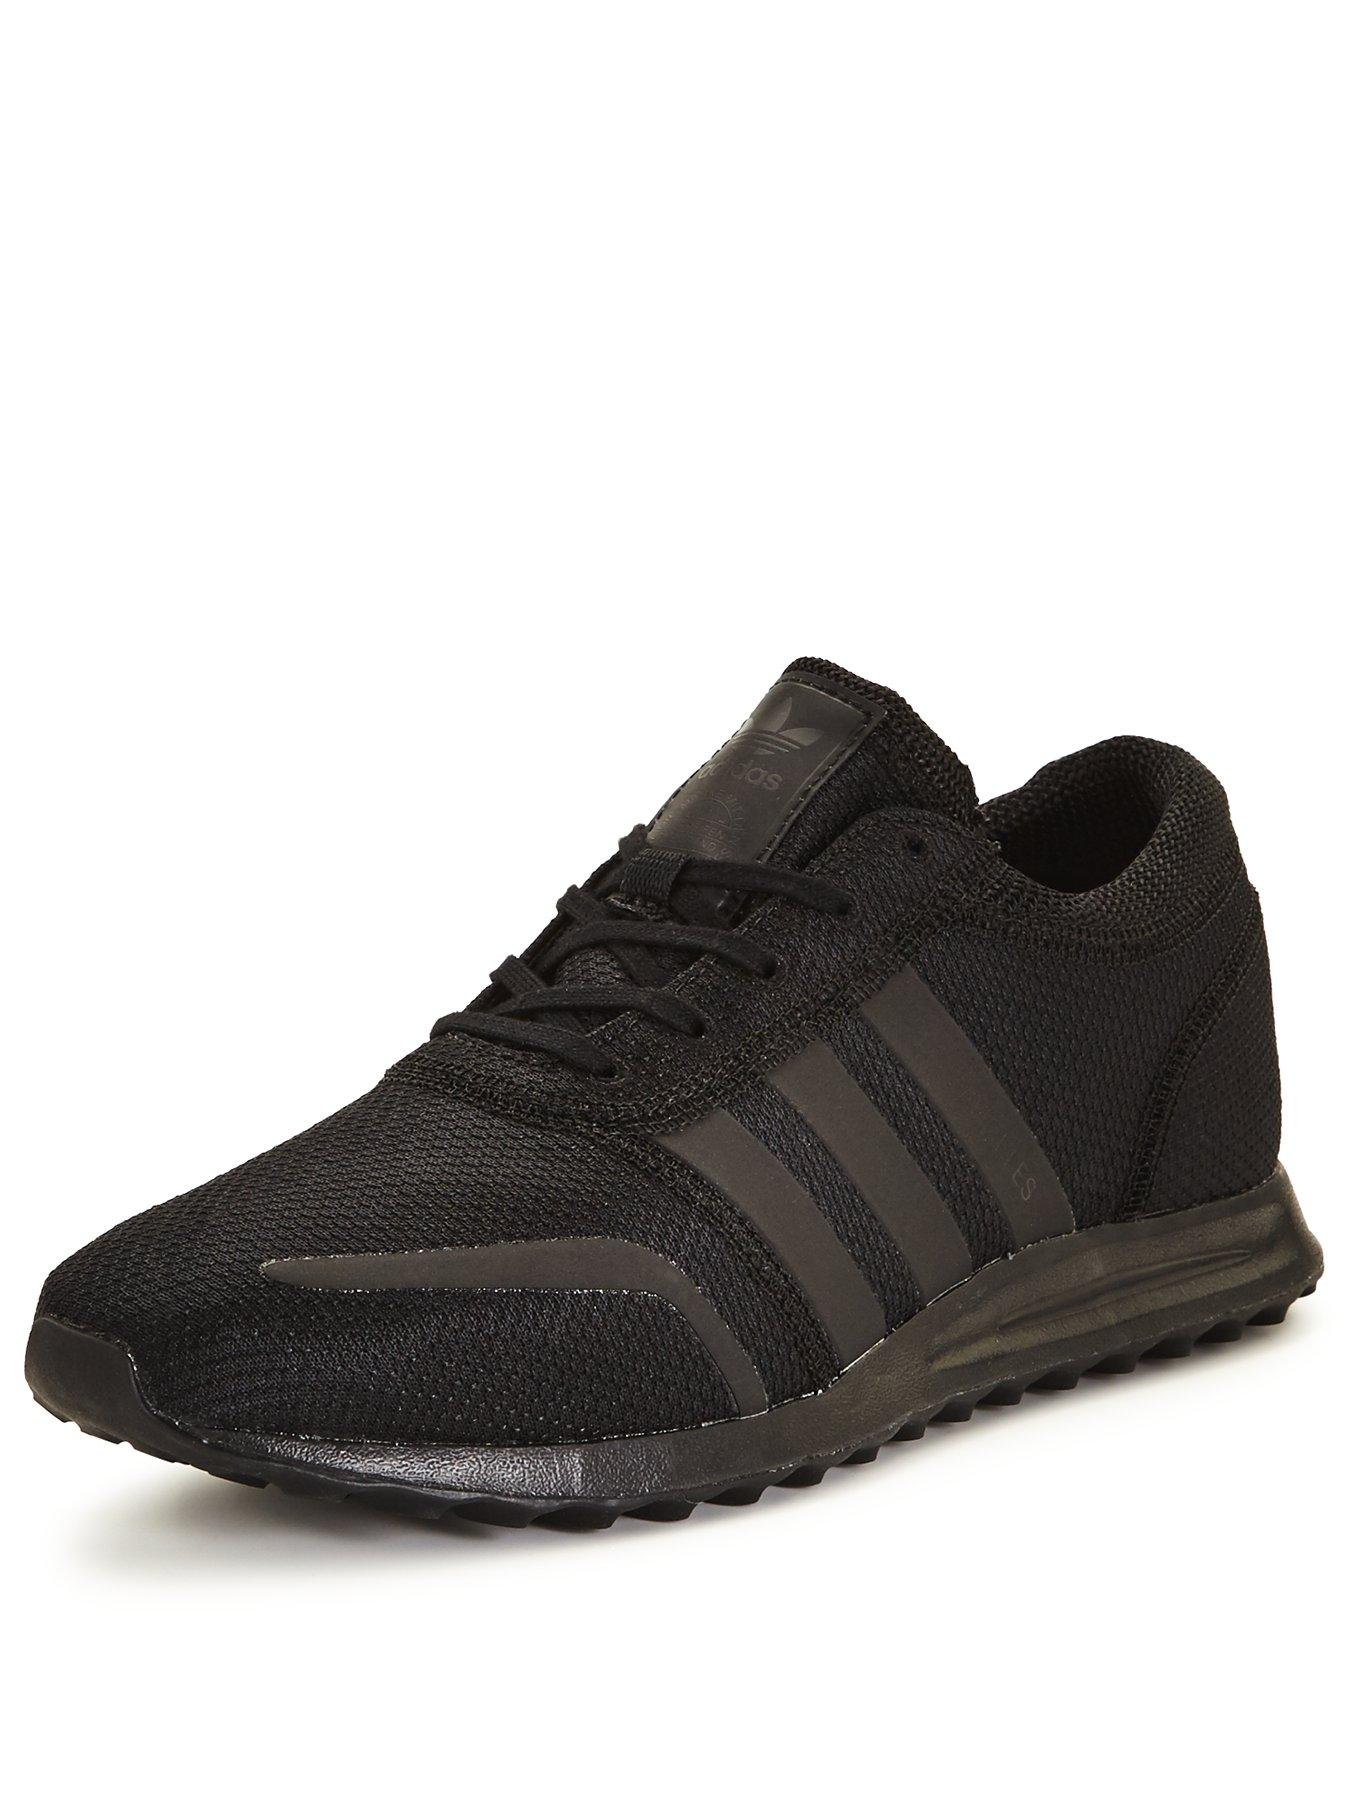 Buy Adidas Gazelle Trainers